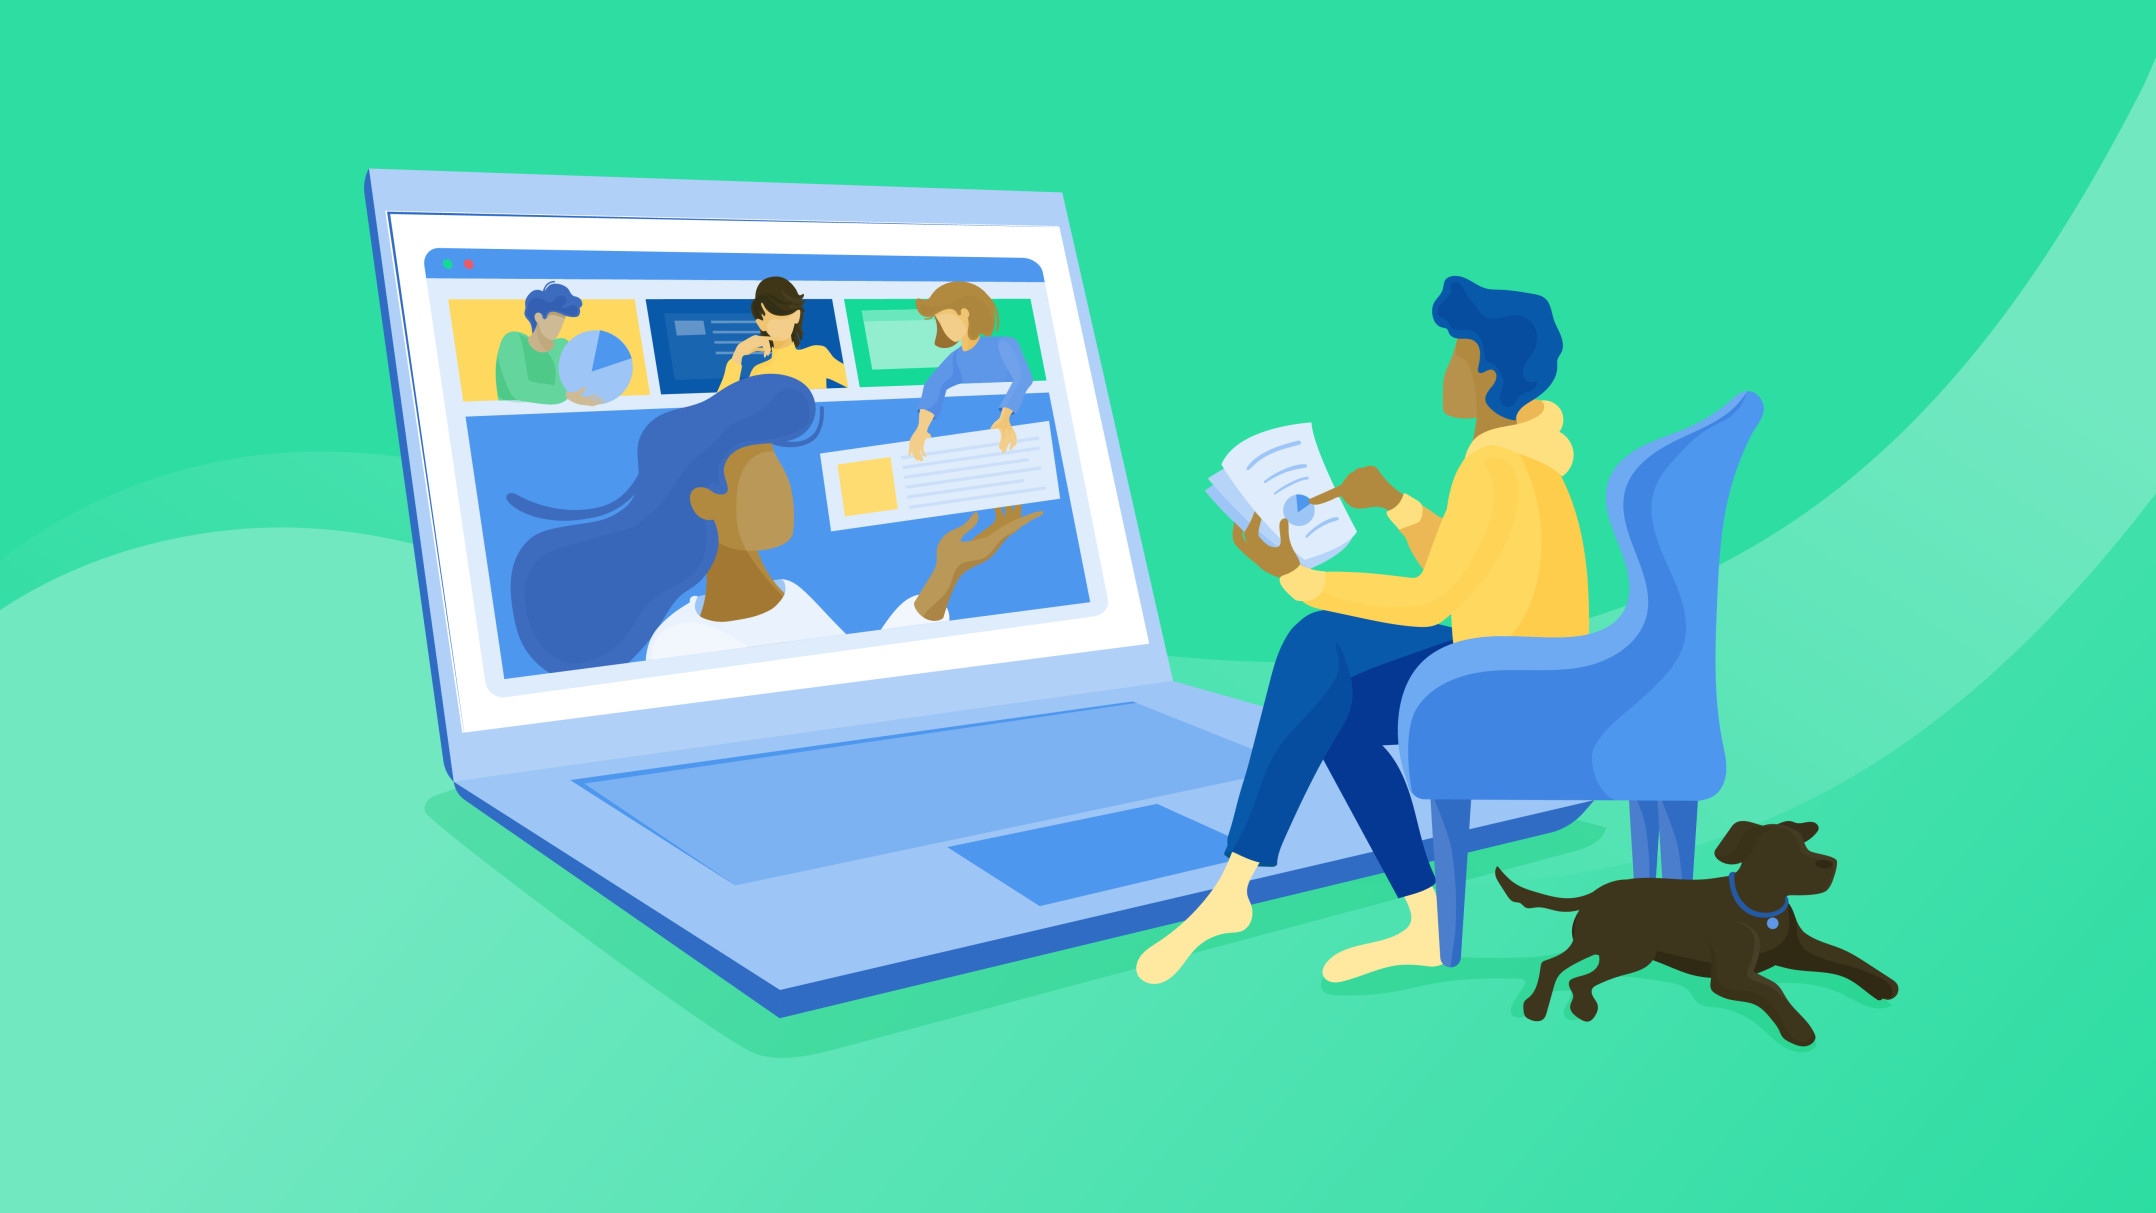 Illustration of someone with a puppy working at their oversized computer.